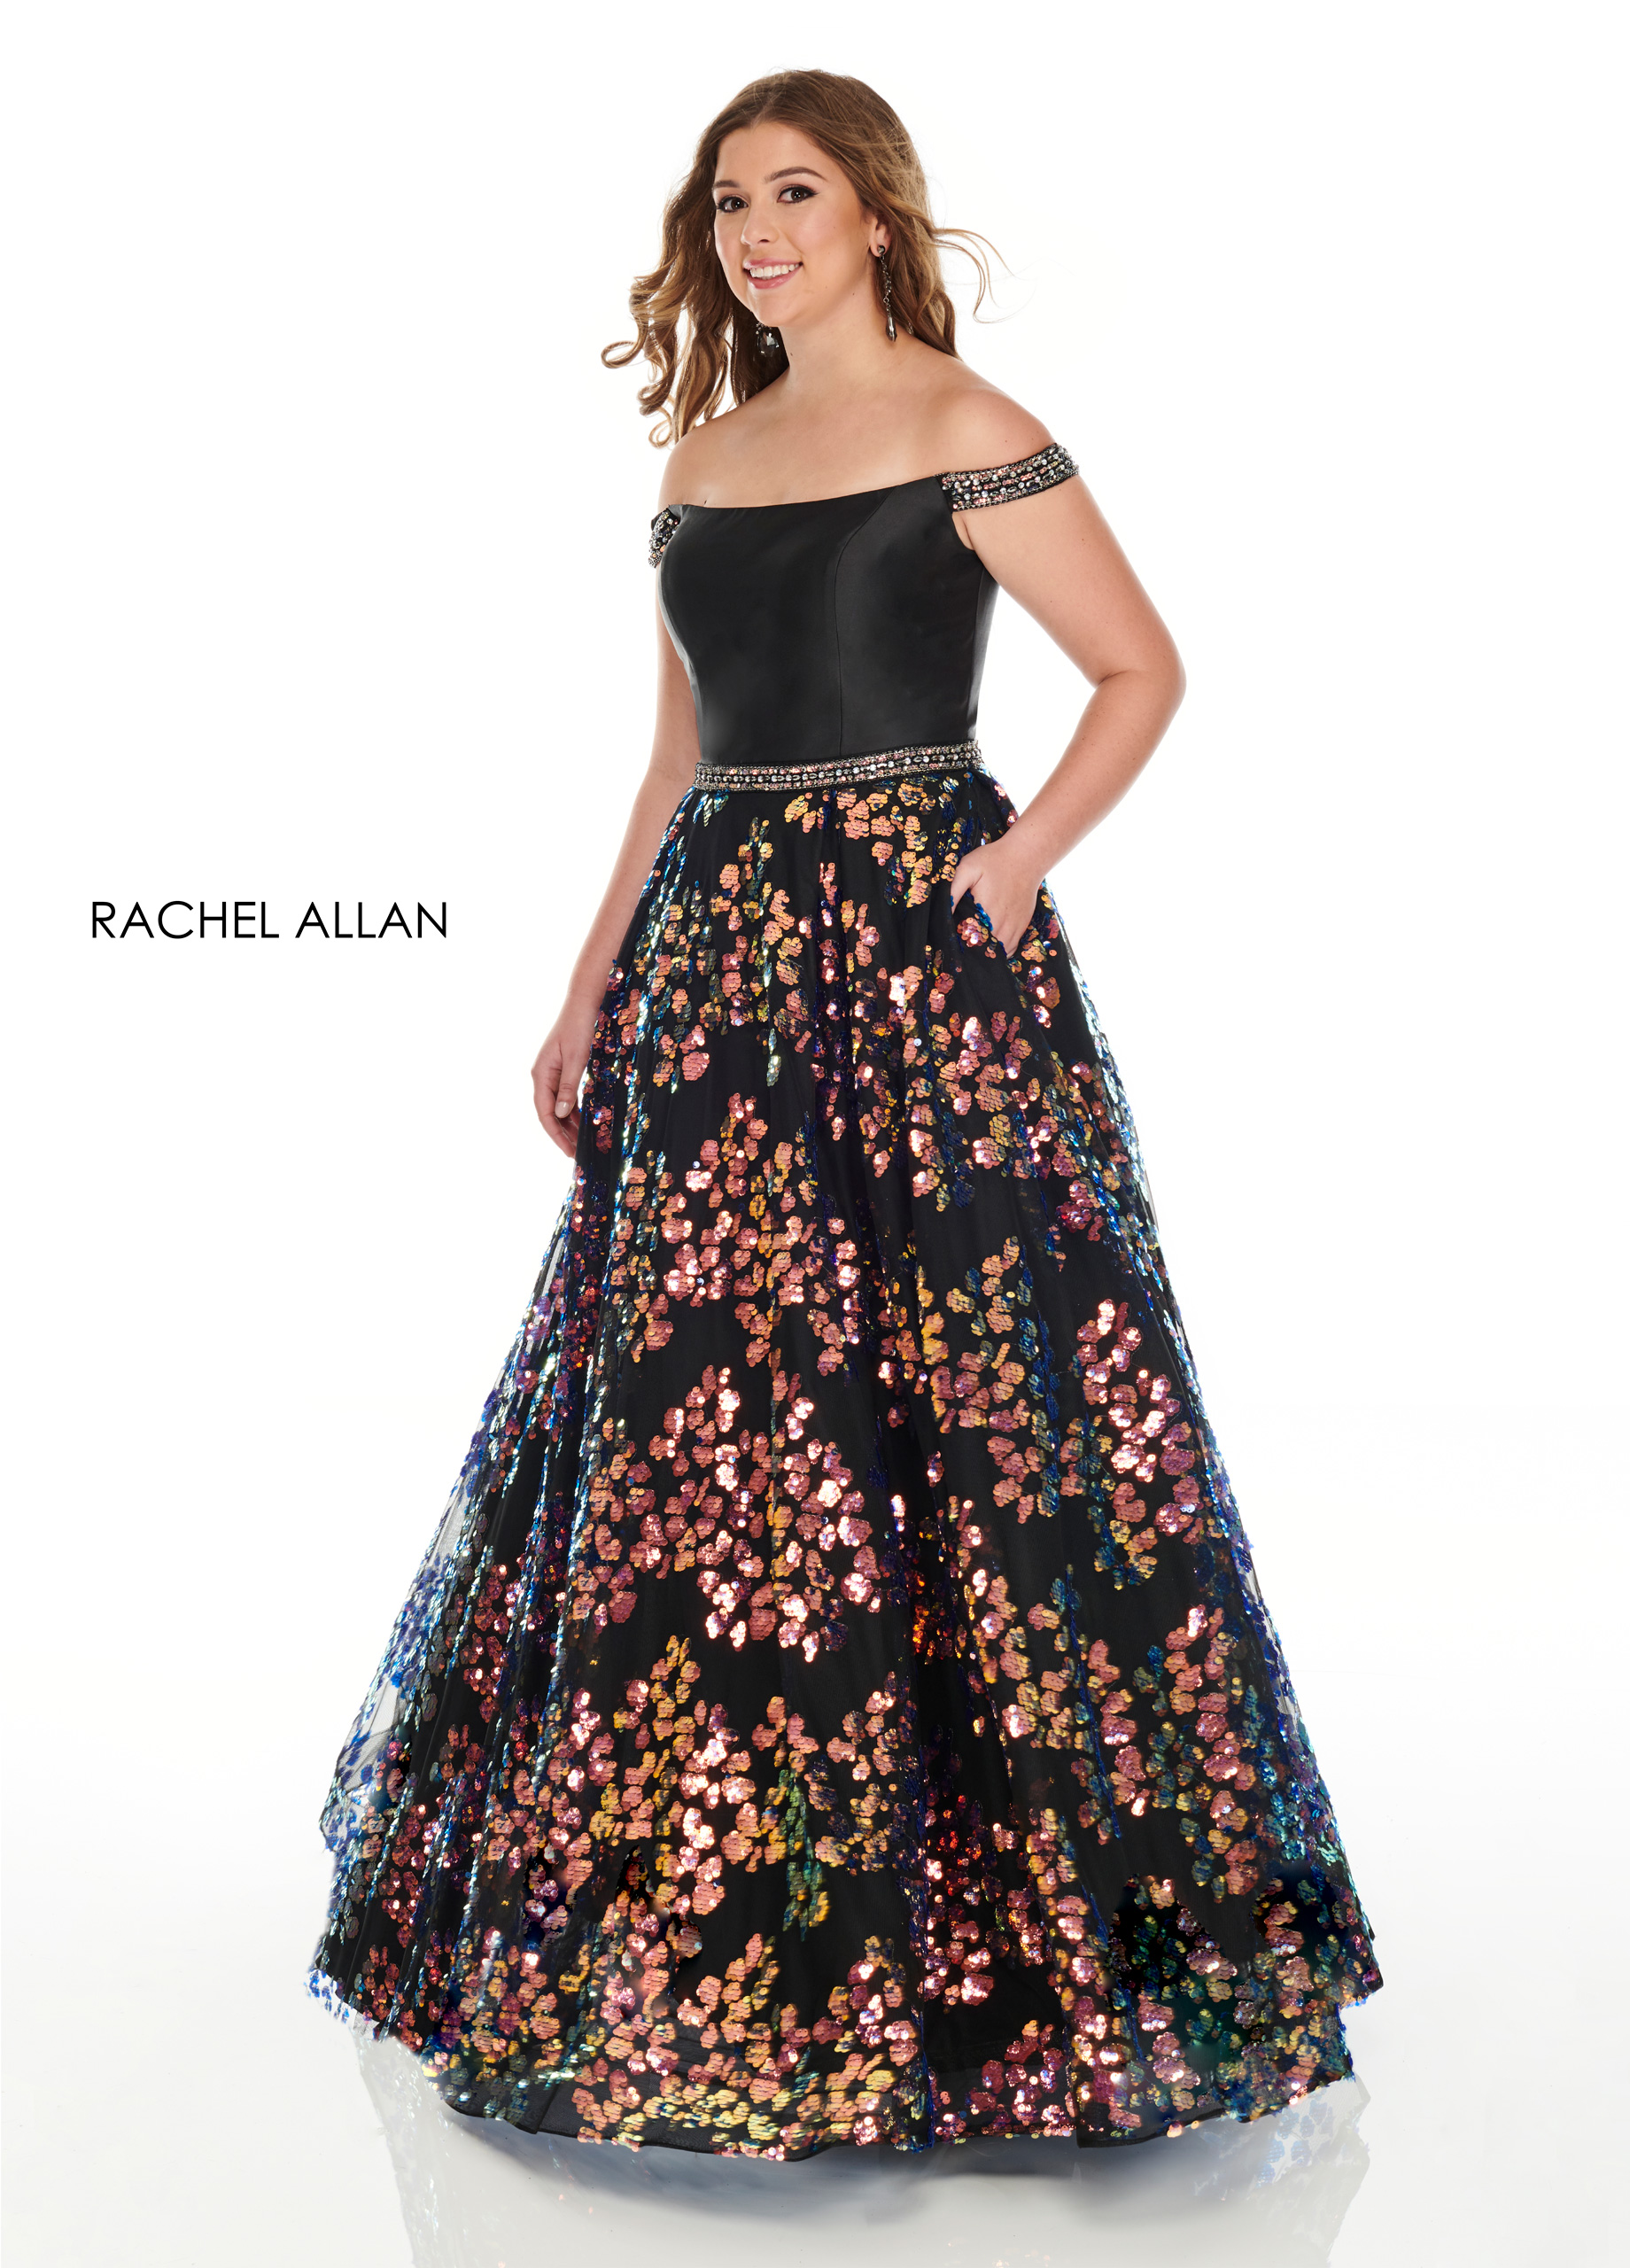 Off The Shoulder A-Line Plus Size Dresses in Black Color